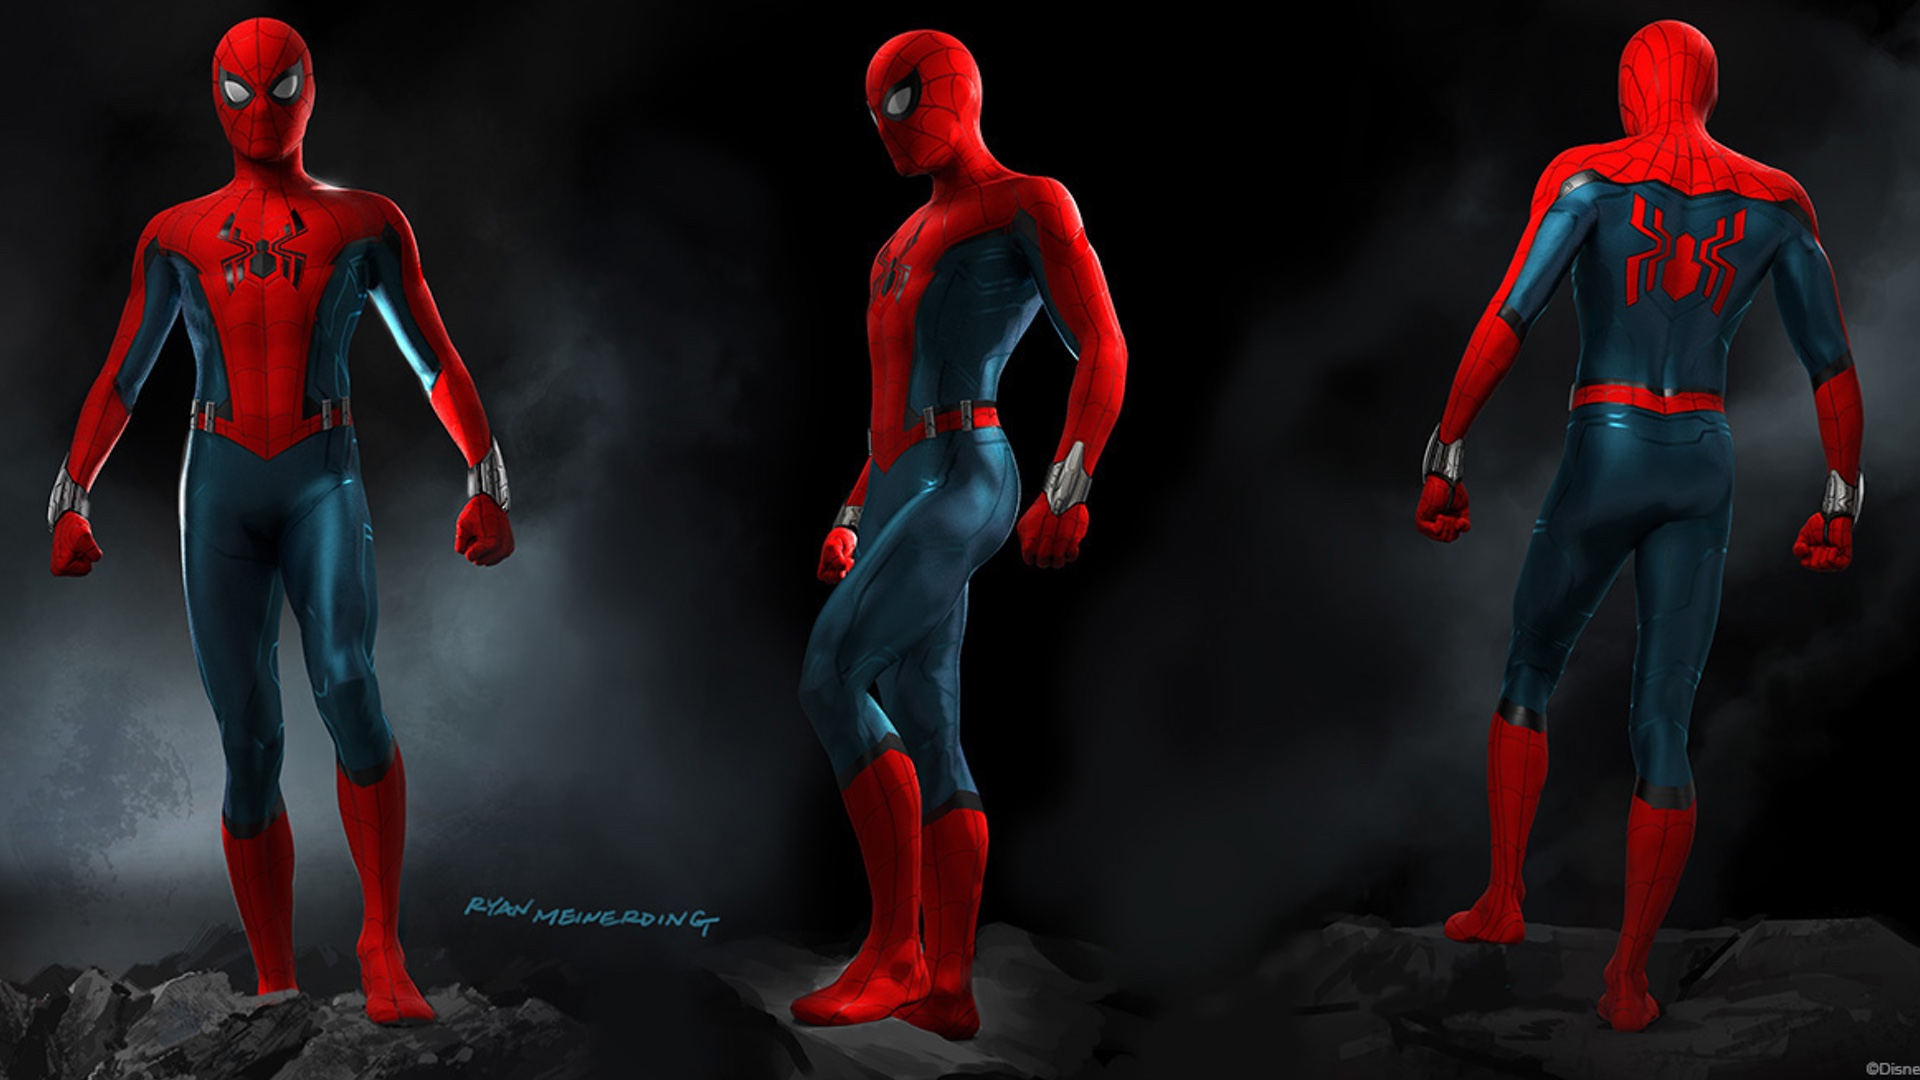 new-details-on-disneys-interactive-spider-man-attraction-and-spider-mans-suit-revealed-social.jpg